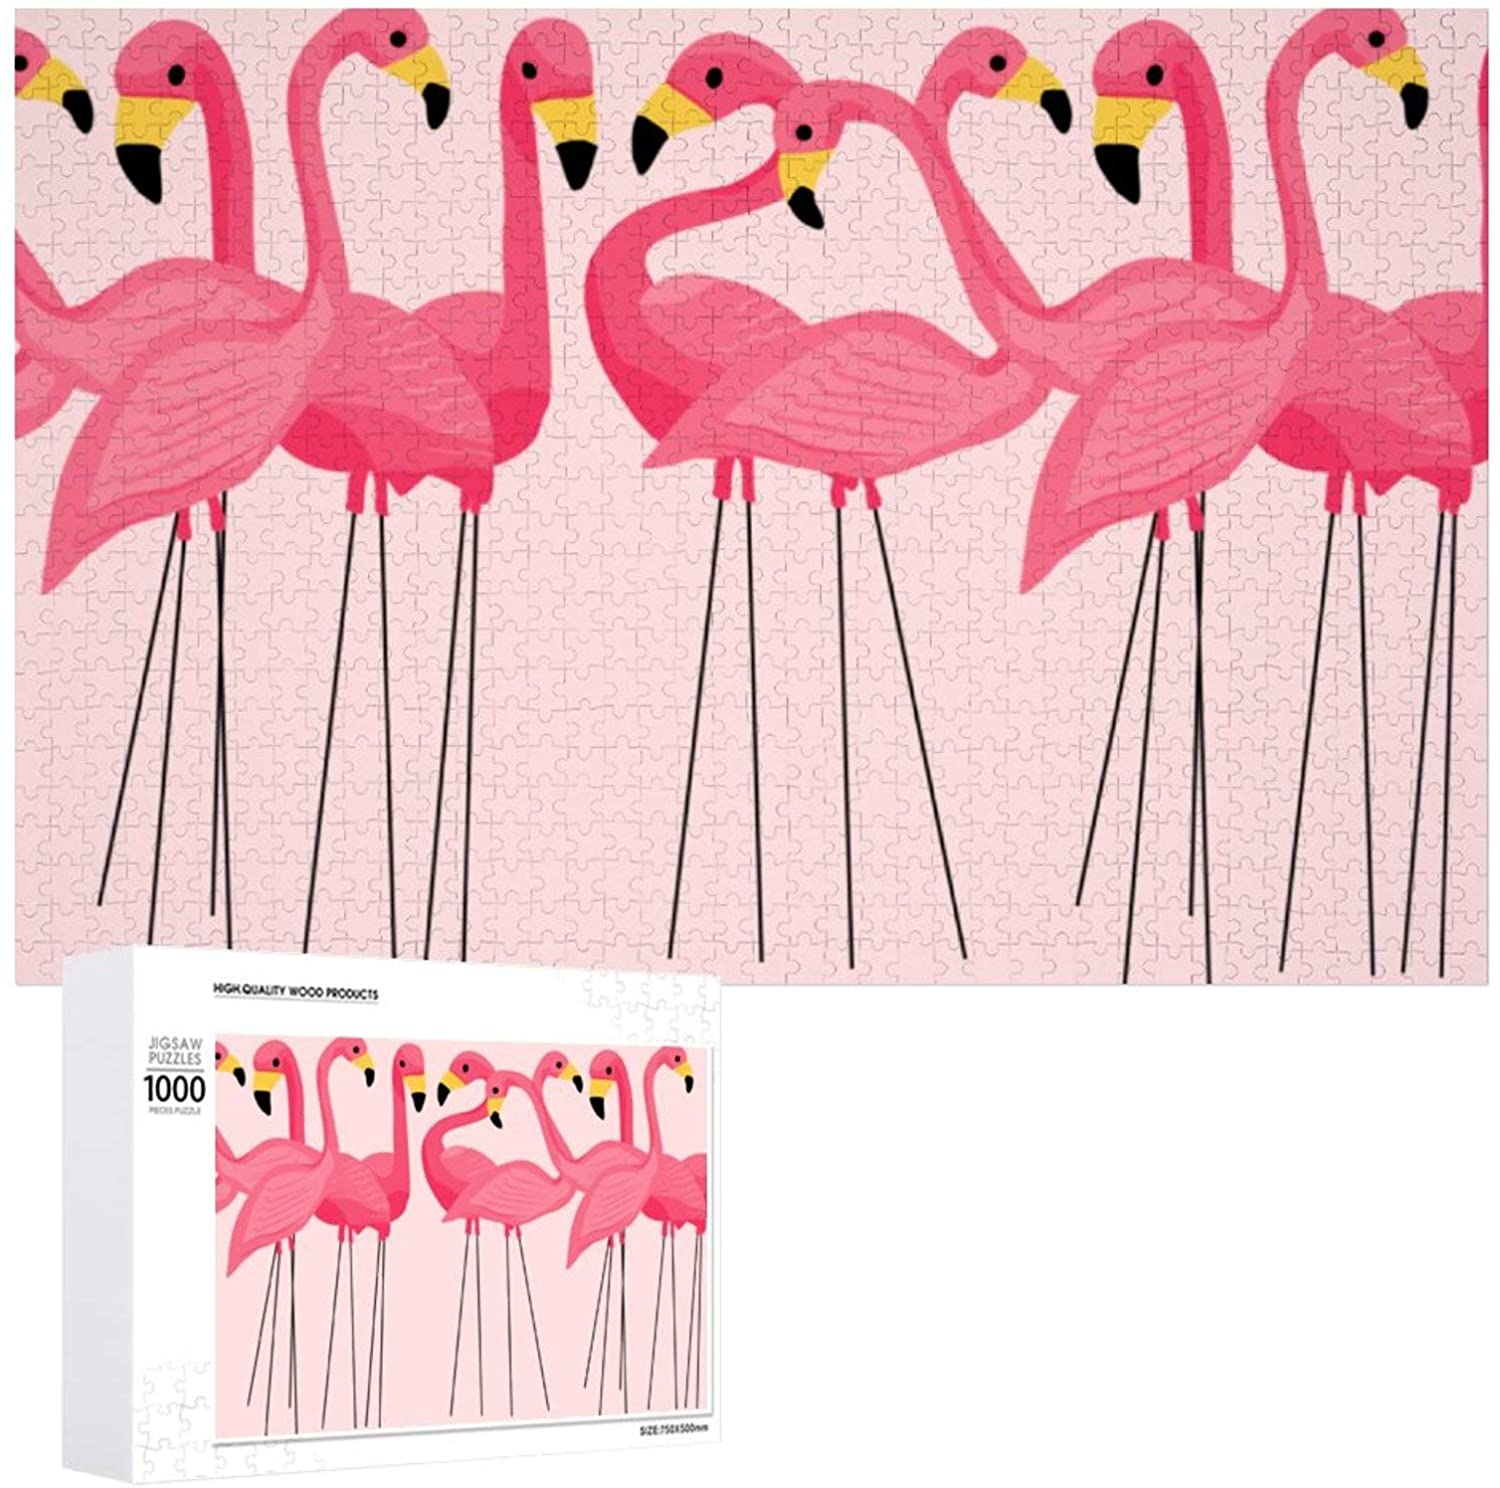 A Flock of Flamingos Wooden Puzzle 1000 Pieces Jigsaw Puzzle for Adults Kids Large Puzzle Game Toys Gift Christmas Holiday Present